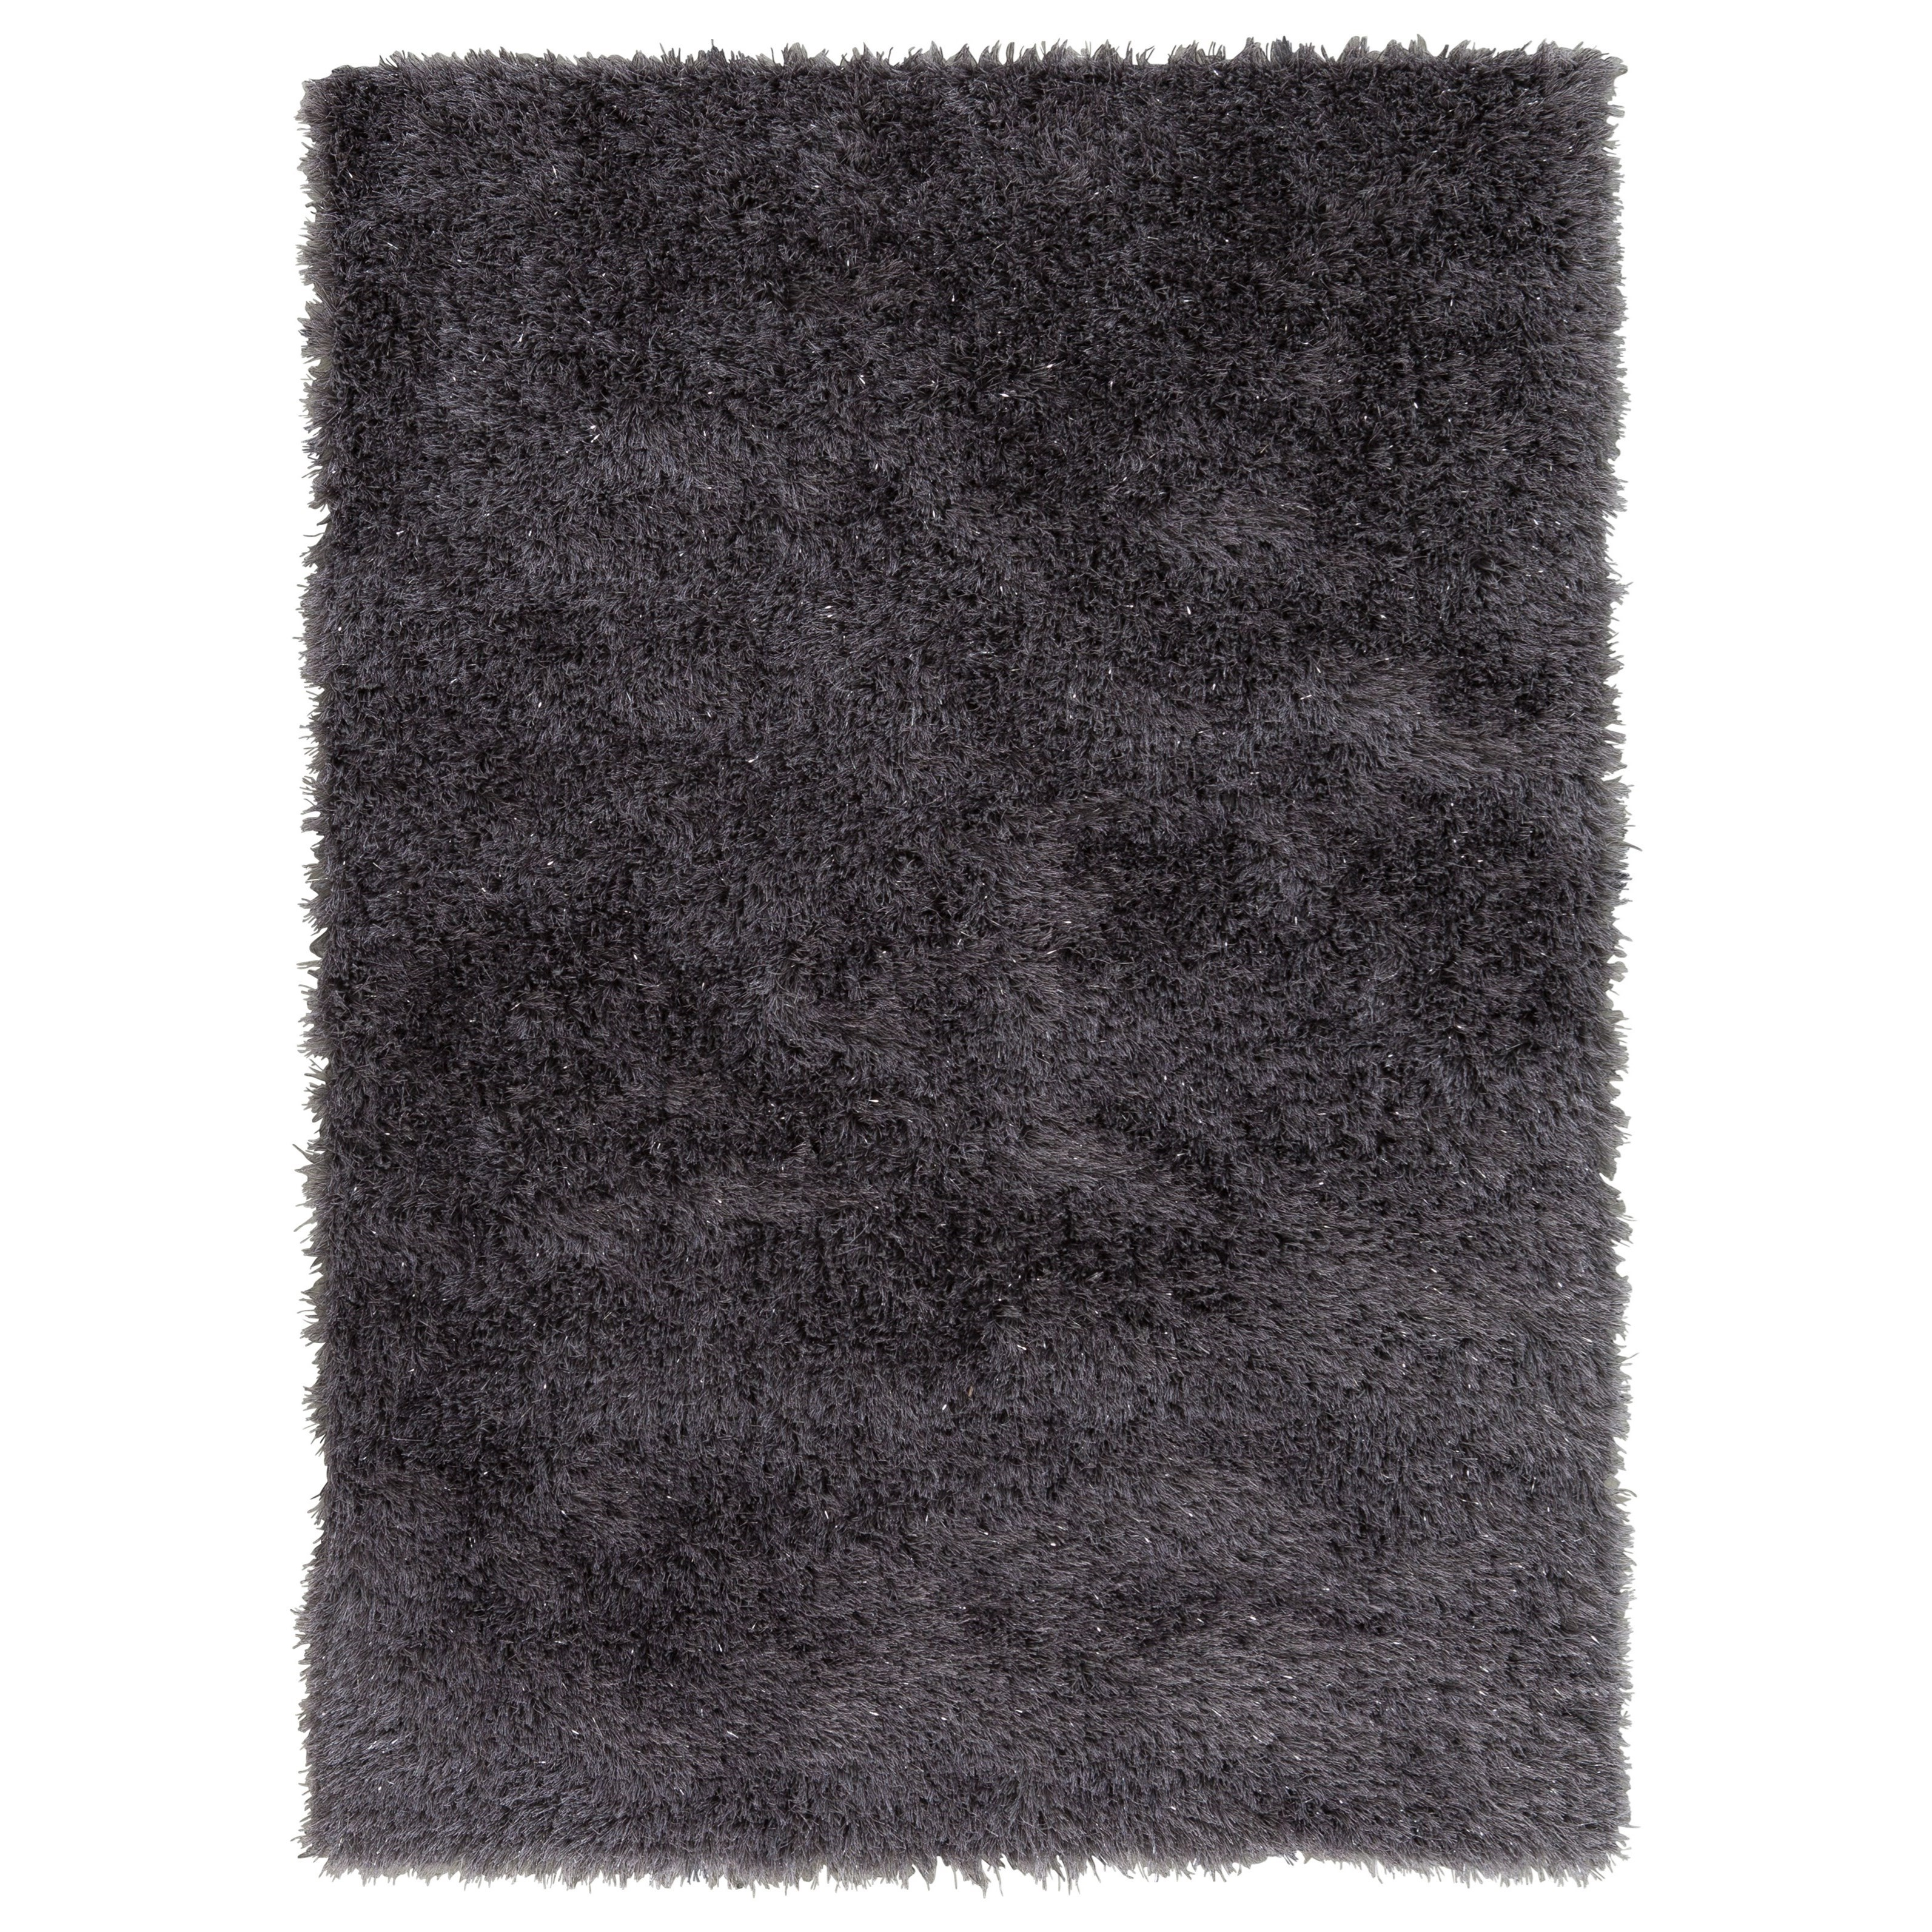 Signature Design by Ashley Contemporary Area Rugs Jaznae Gray Medium Rug - Item Number: R403192